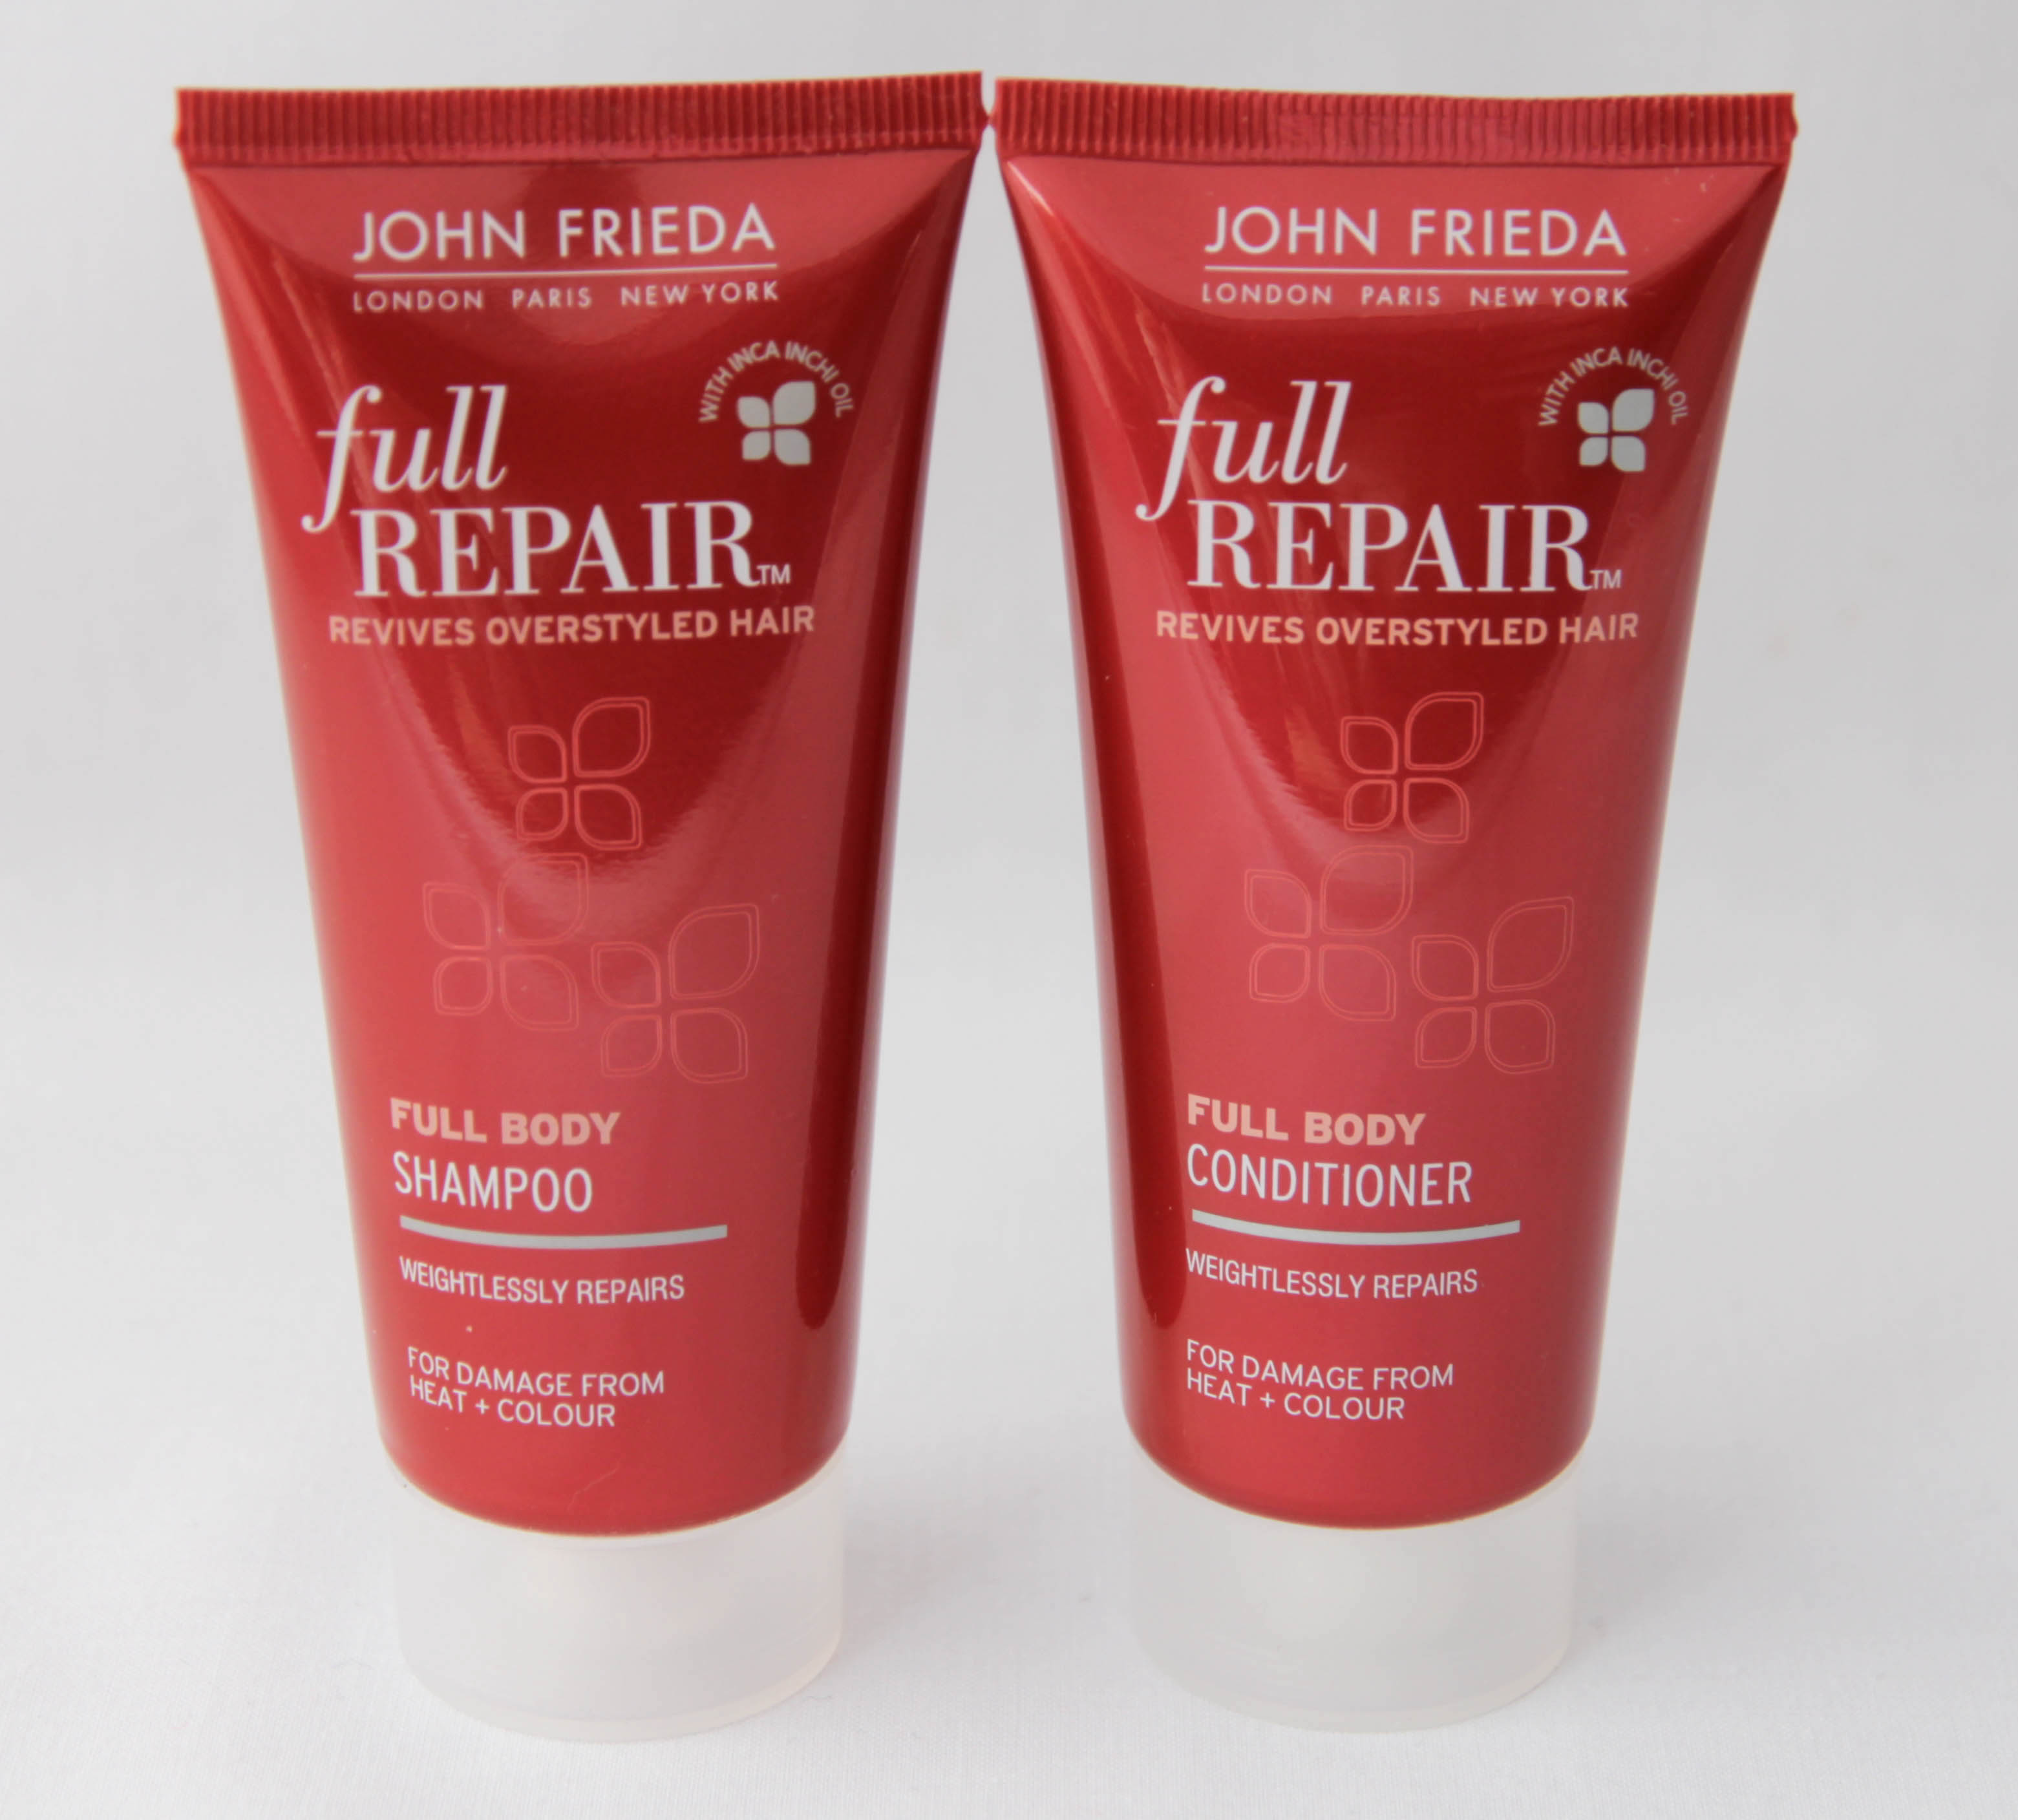 John Frieda's Full Repair Line